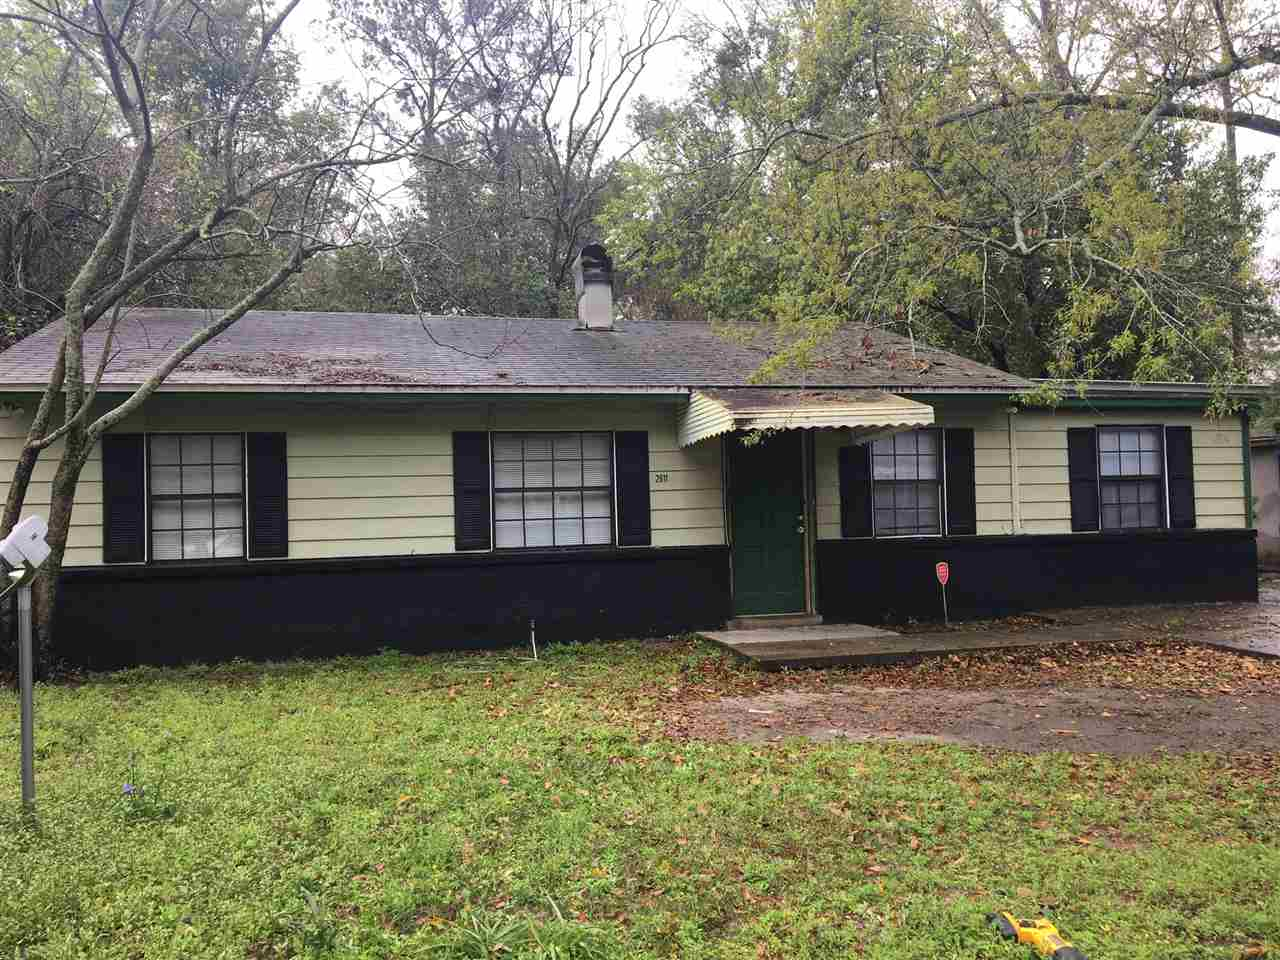 2811 Tartary, TALLAHASSEE, Florida 32301, 4 Bedrooms Bedrooms, ,1 BathroomBathrooms,Single Family,For Sale,2811 Tartary,1,325964